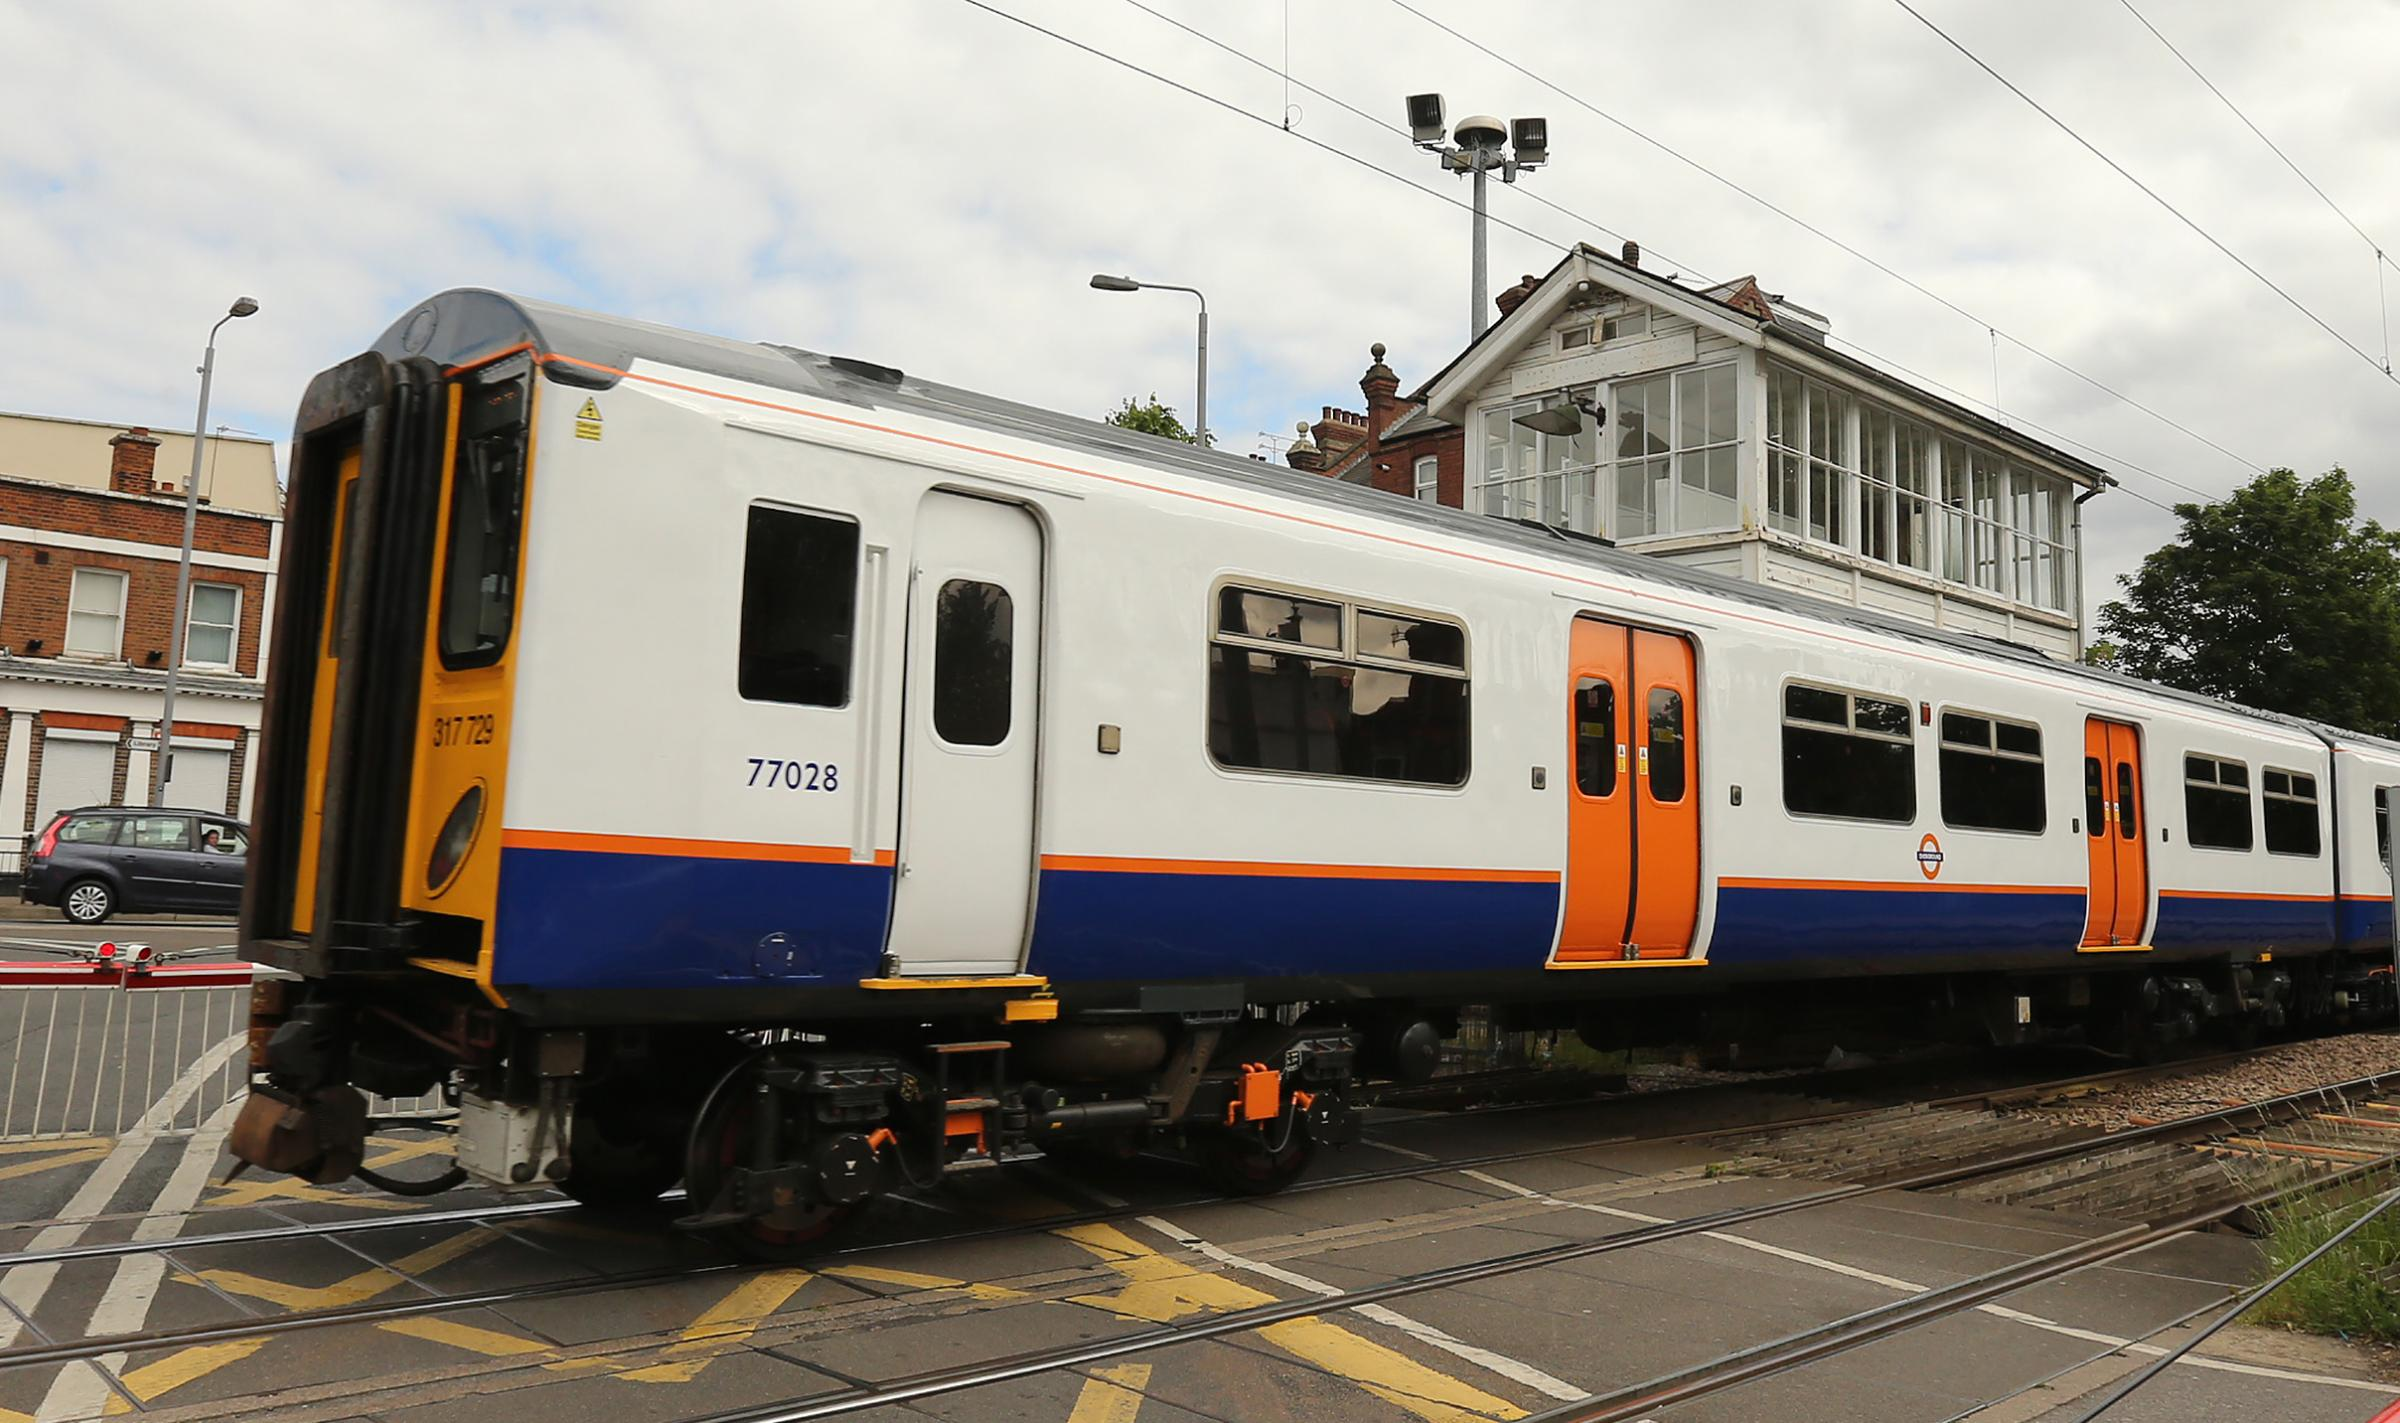 New London Overground train in Highams Park